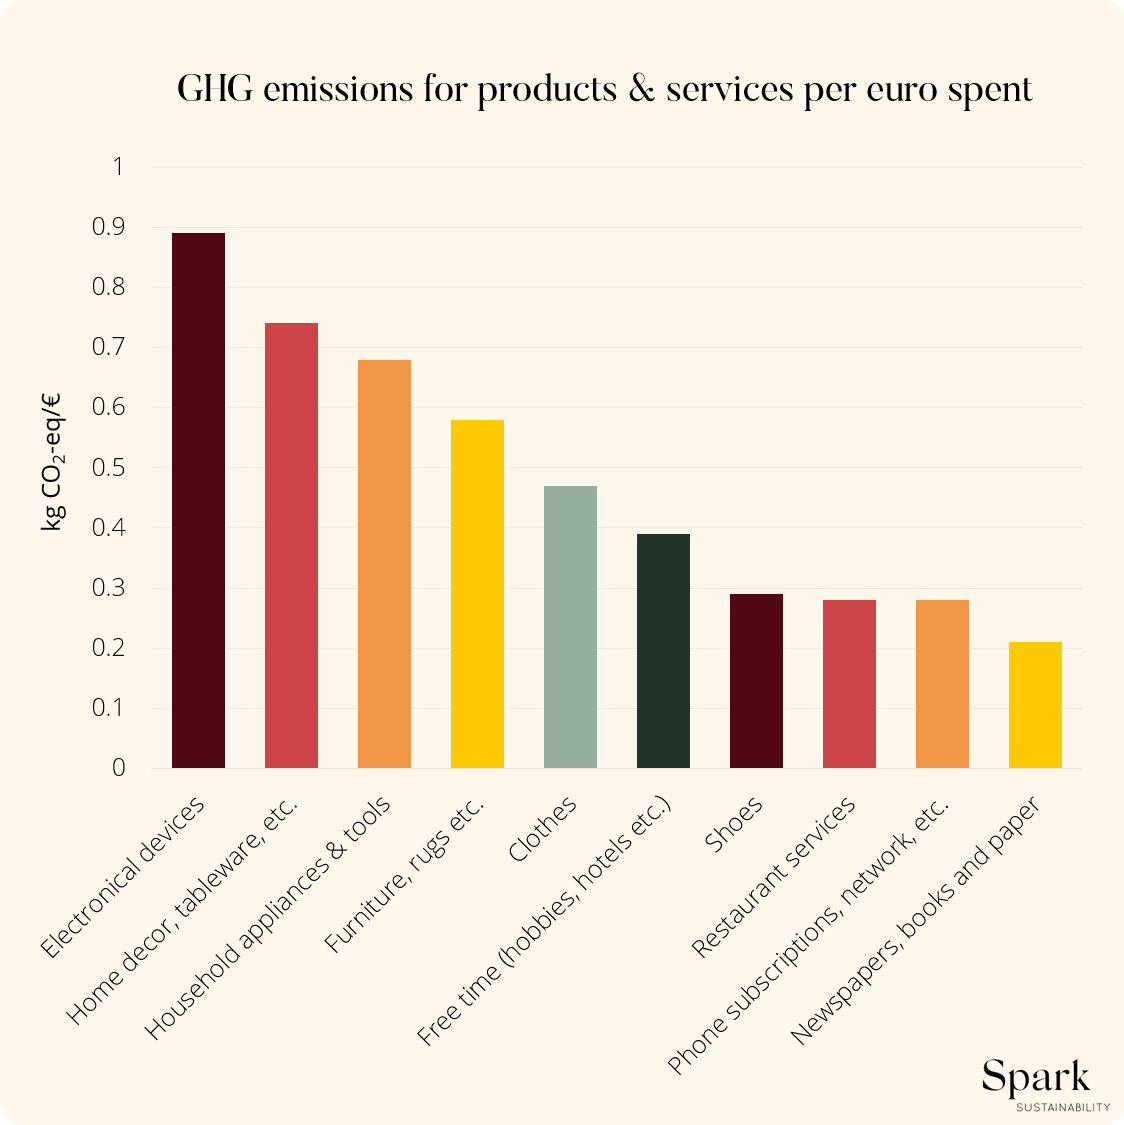 Infographic of greenhouse gas emissions for products and services per category per euro spent.